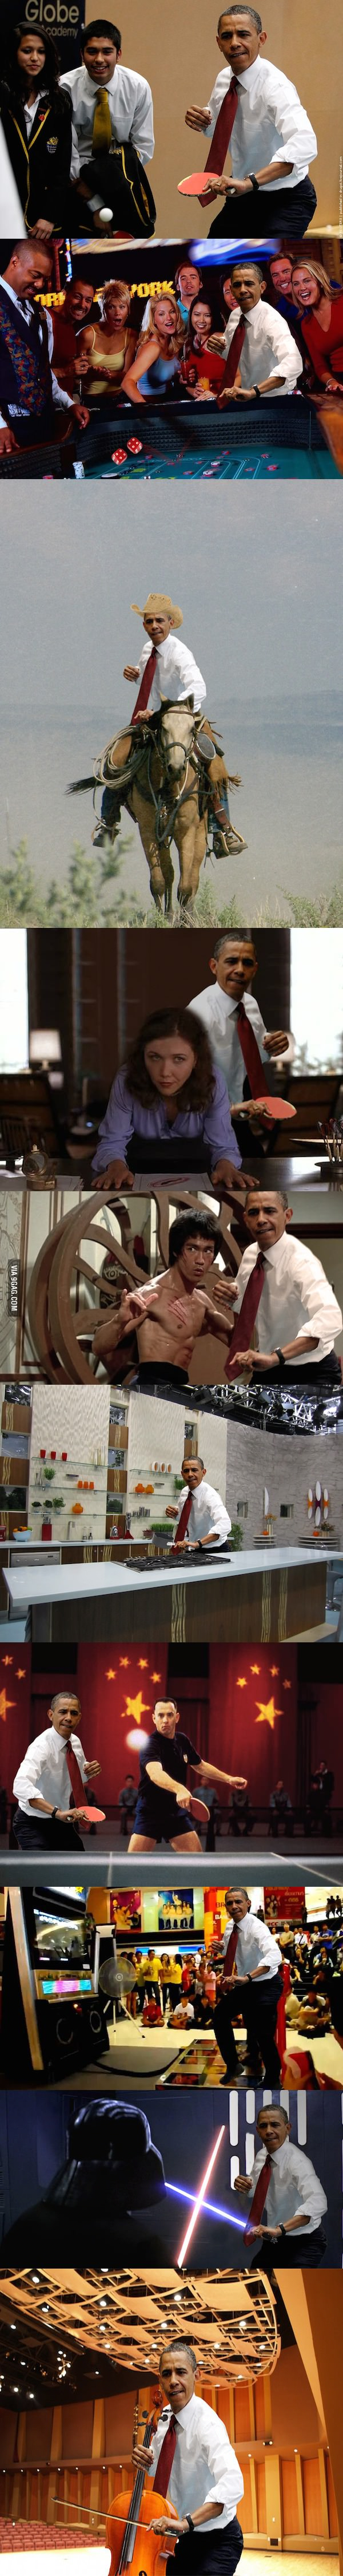 Obama-playing-table-tennis-photoshopped